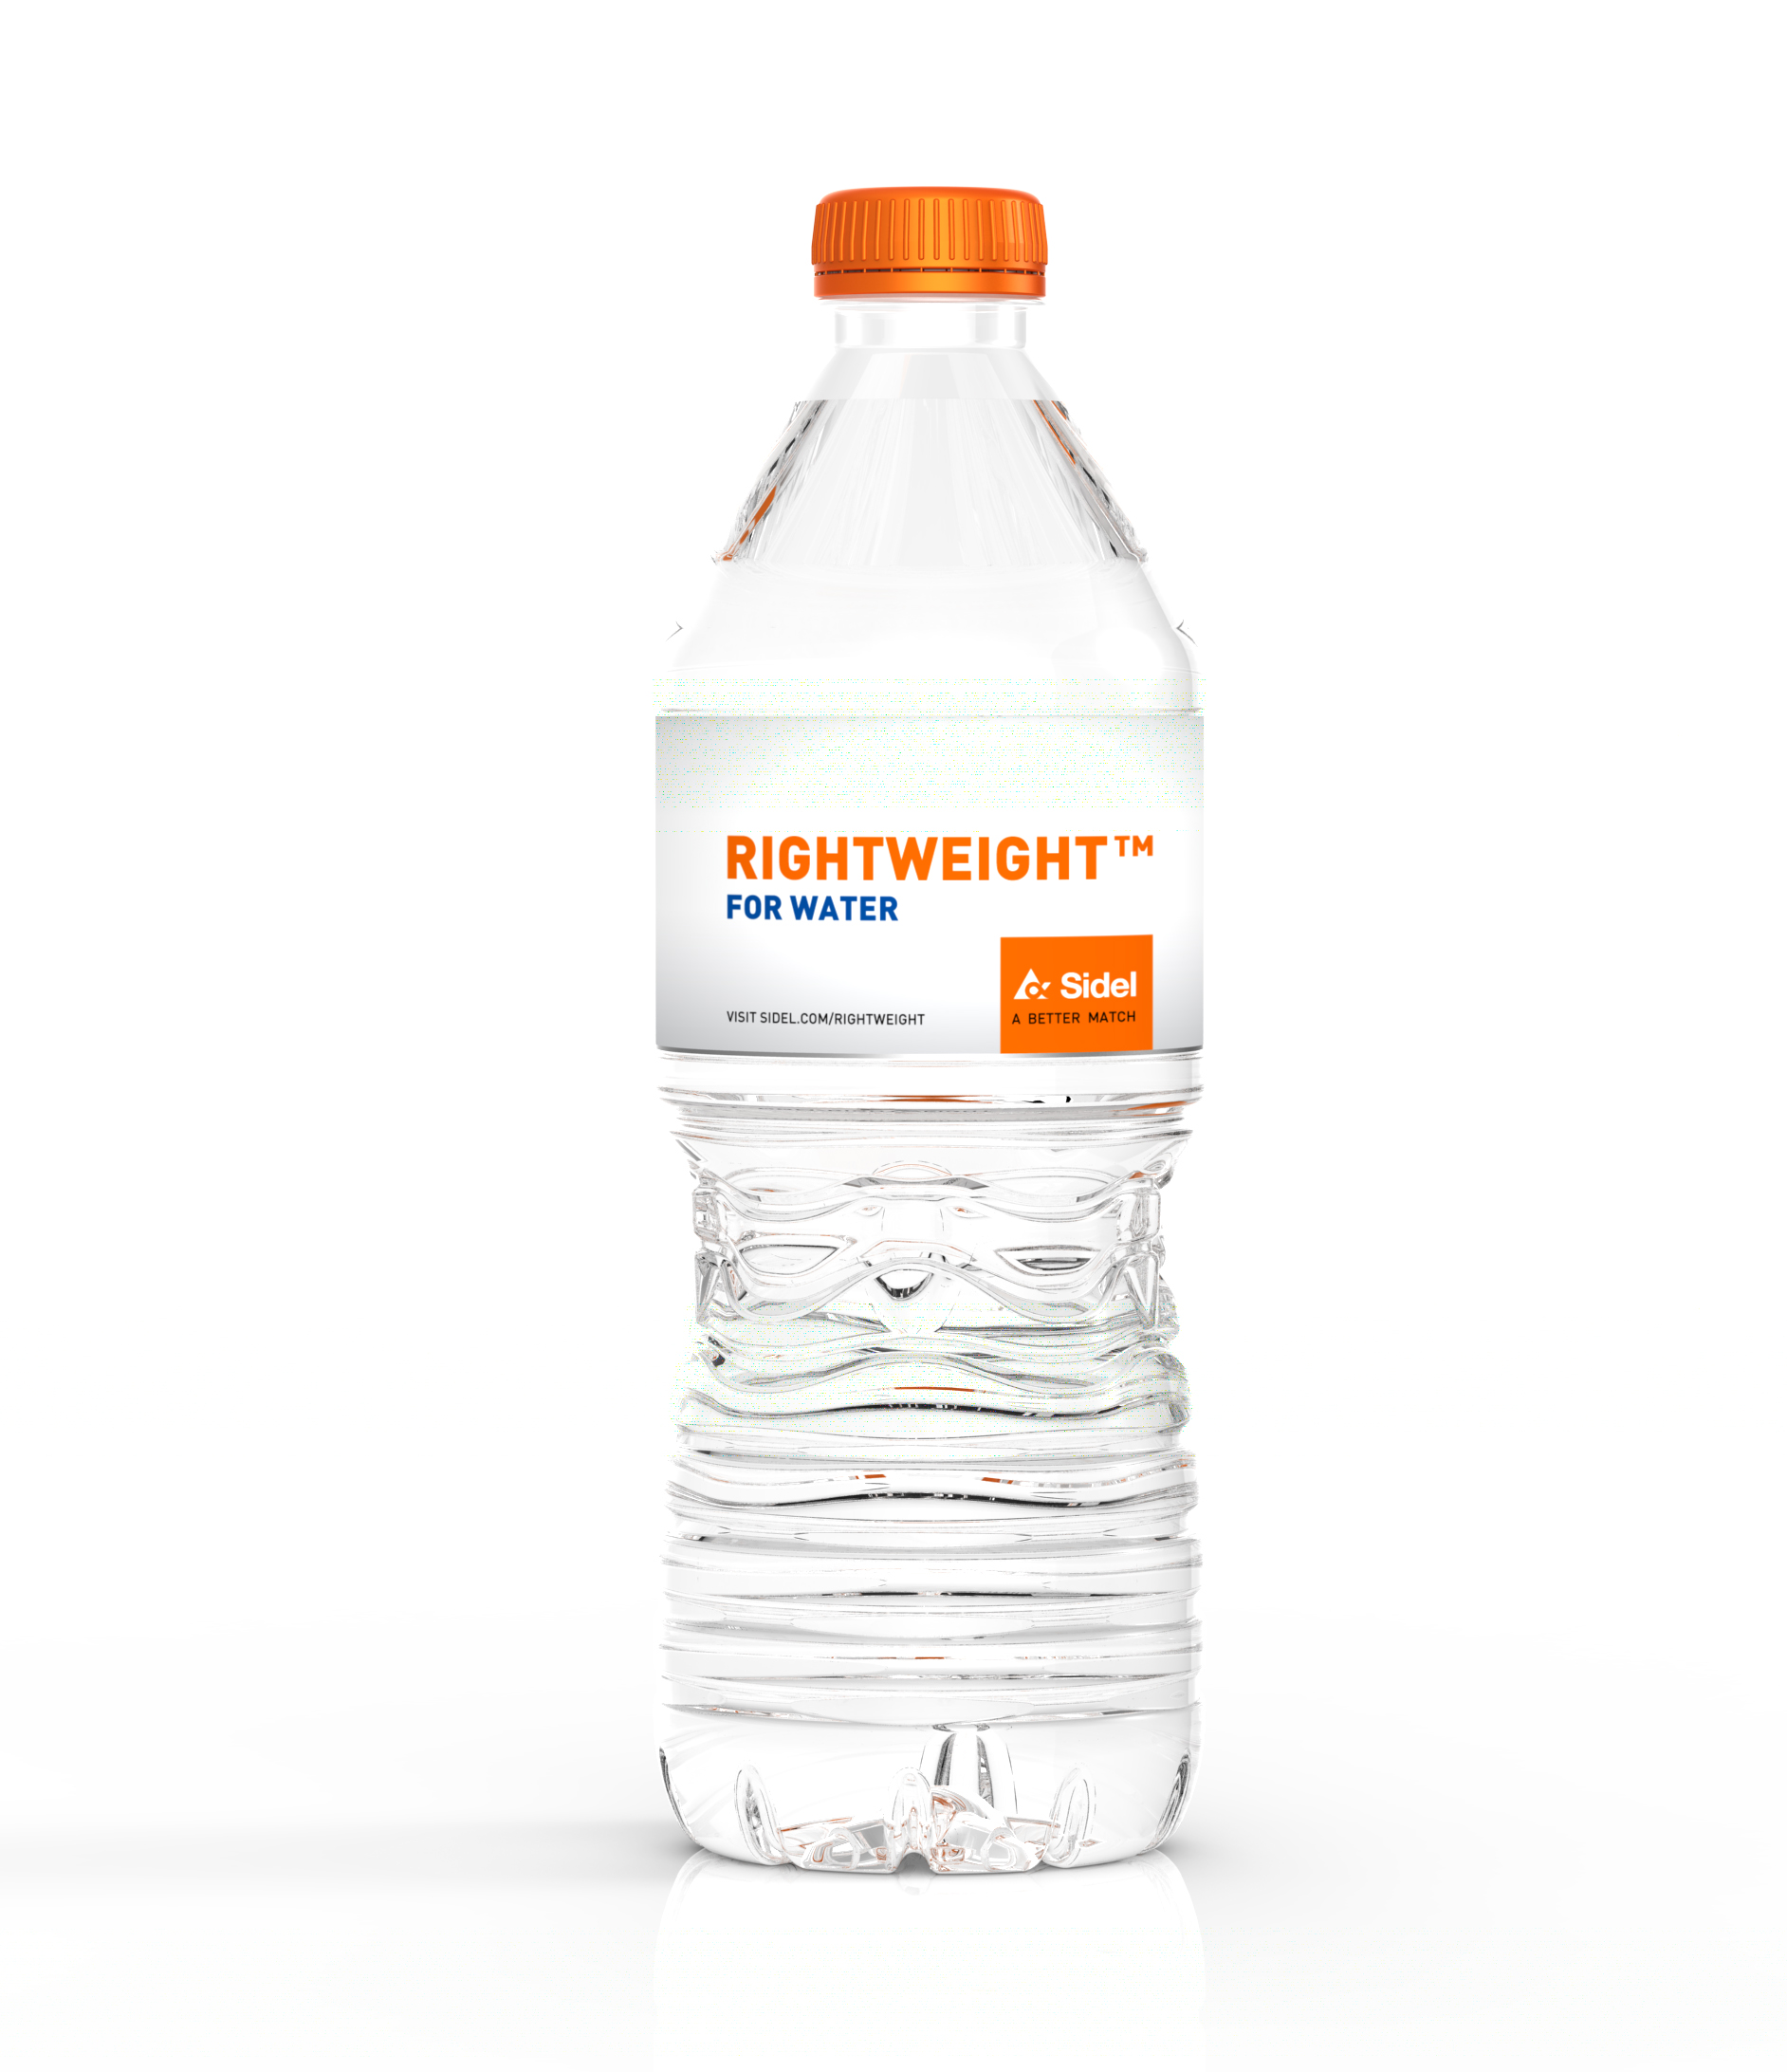 Rightweight bottle water